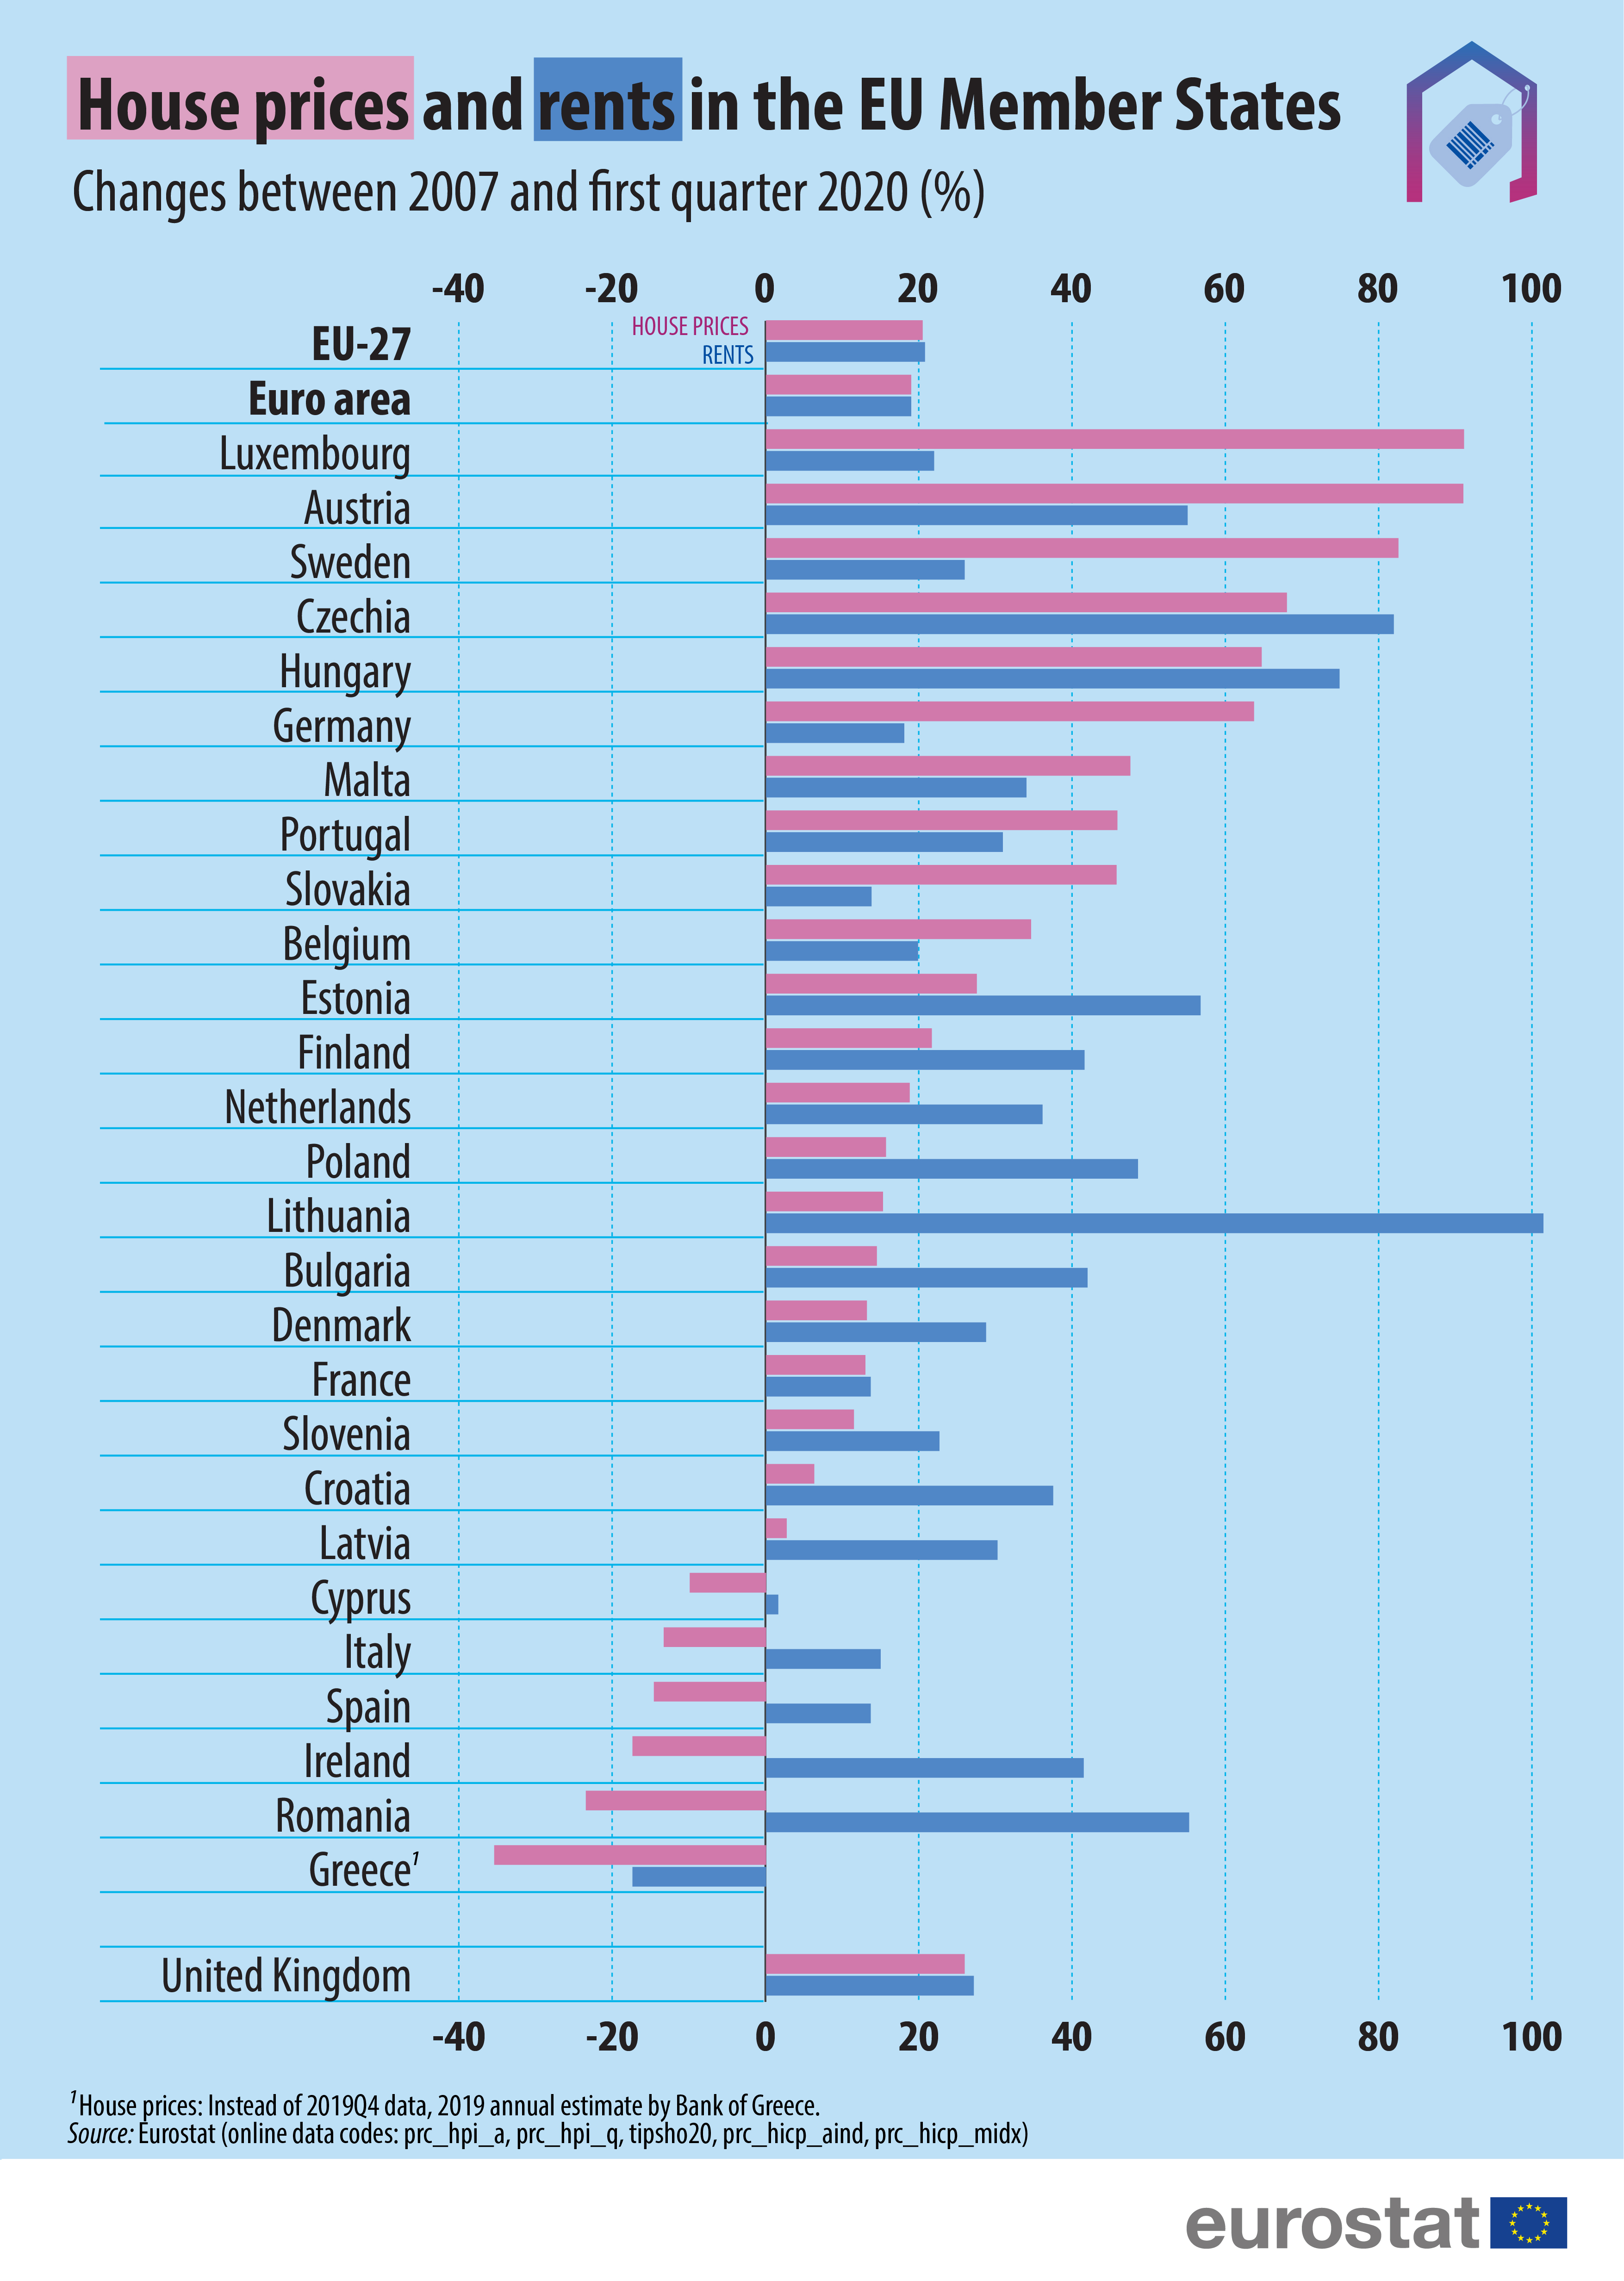 House prices and rents in the EU Member States